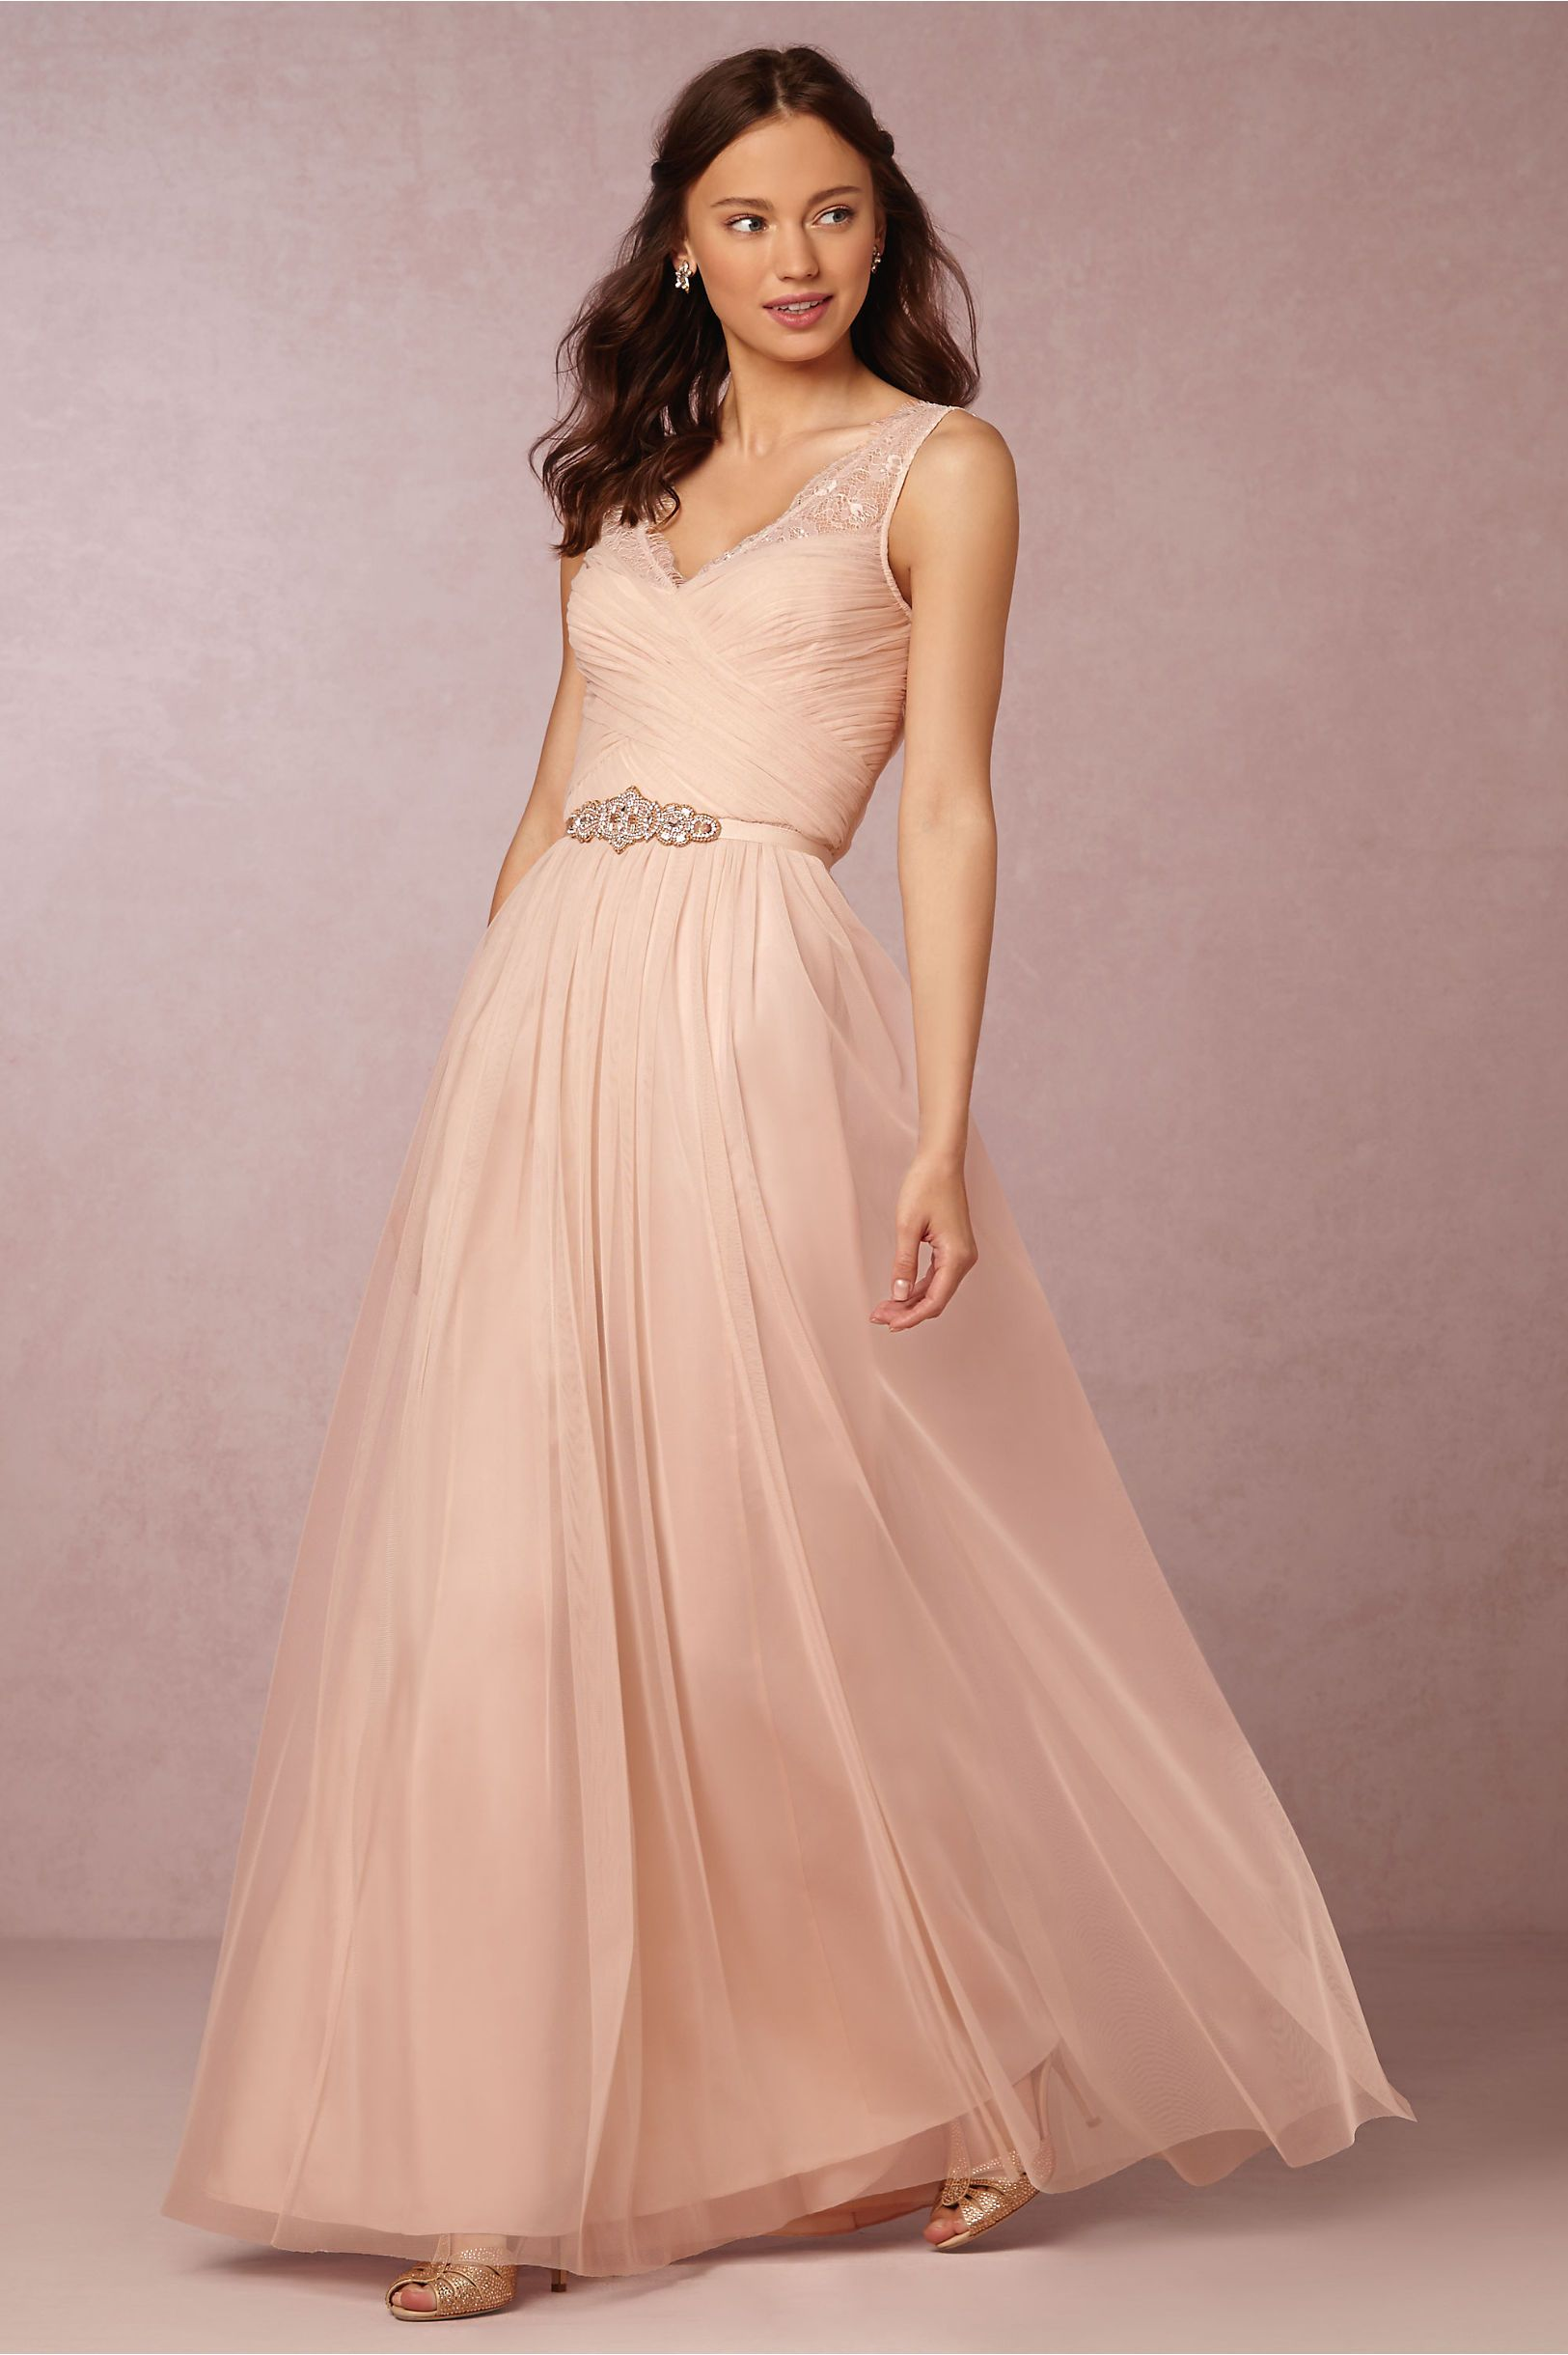 Fleur bridesmaids dress in blush from bhldn louieus board